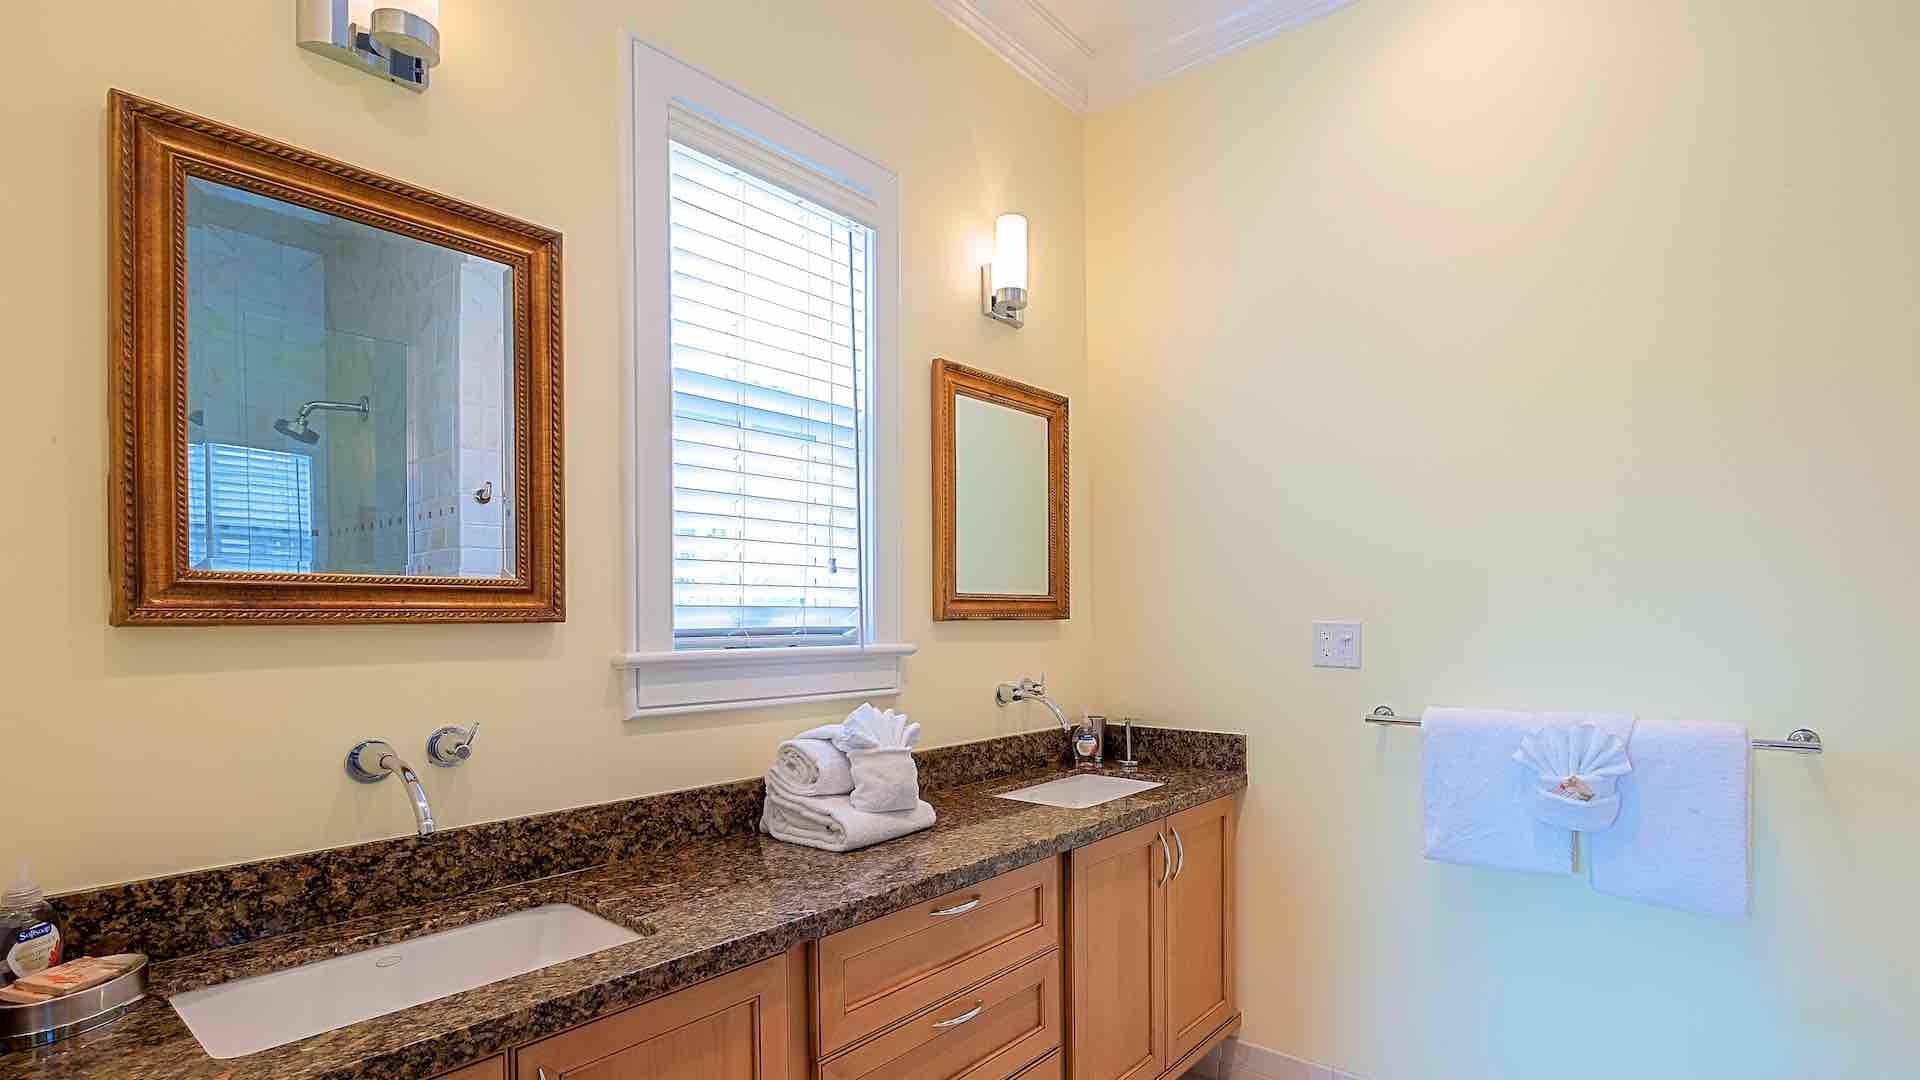 The second master bathroom has a large double vanity...